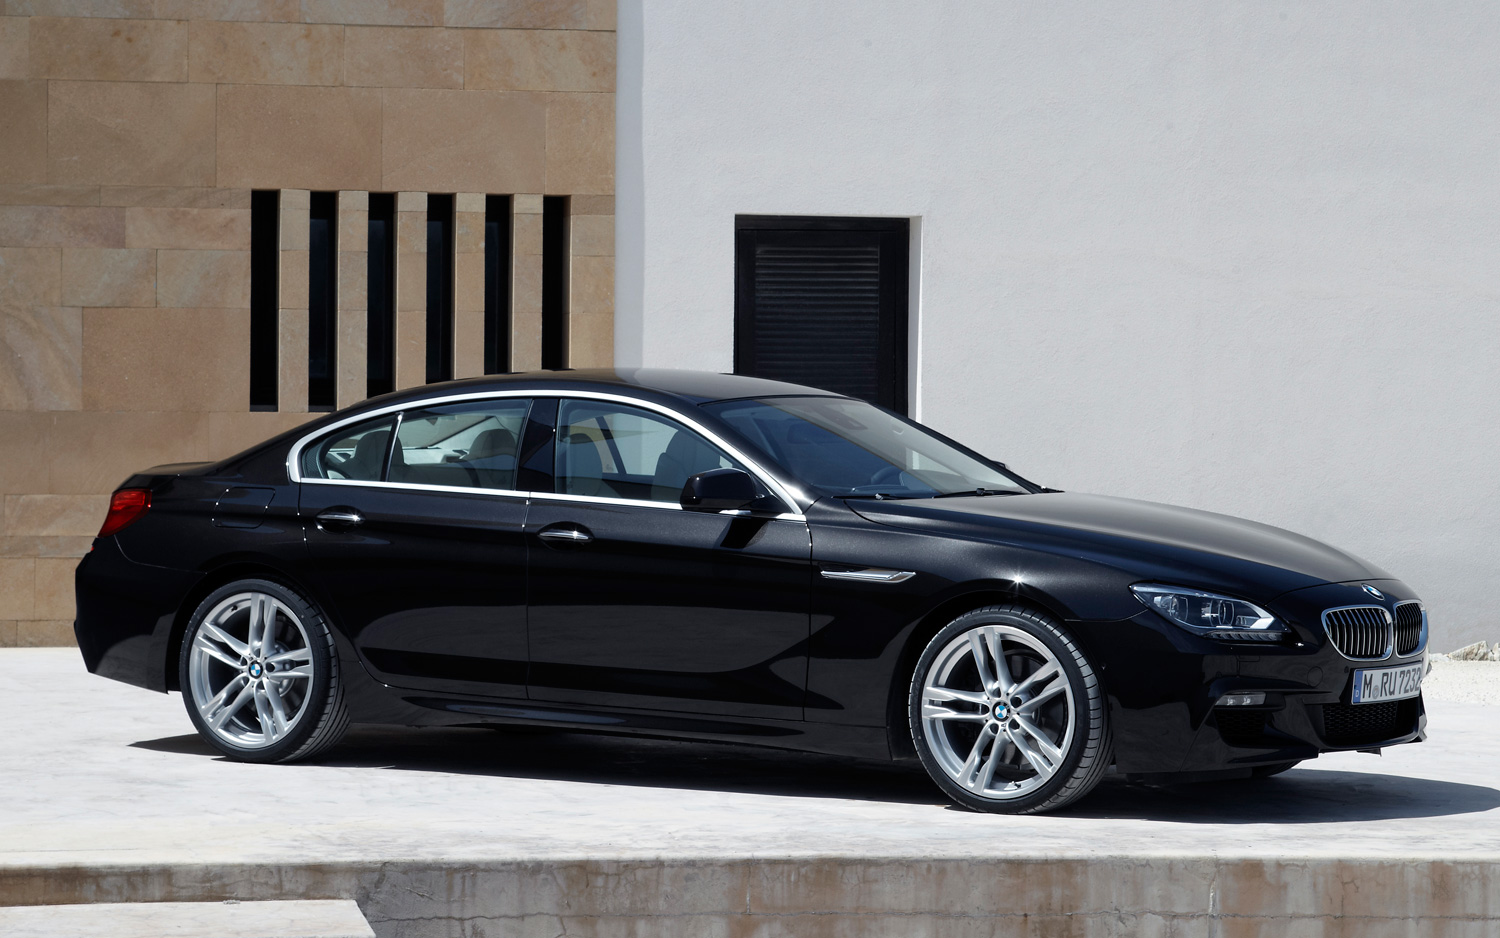 Confirmed BMW M6 Gran Coupe Launching In 2013